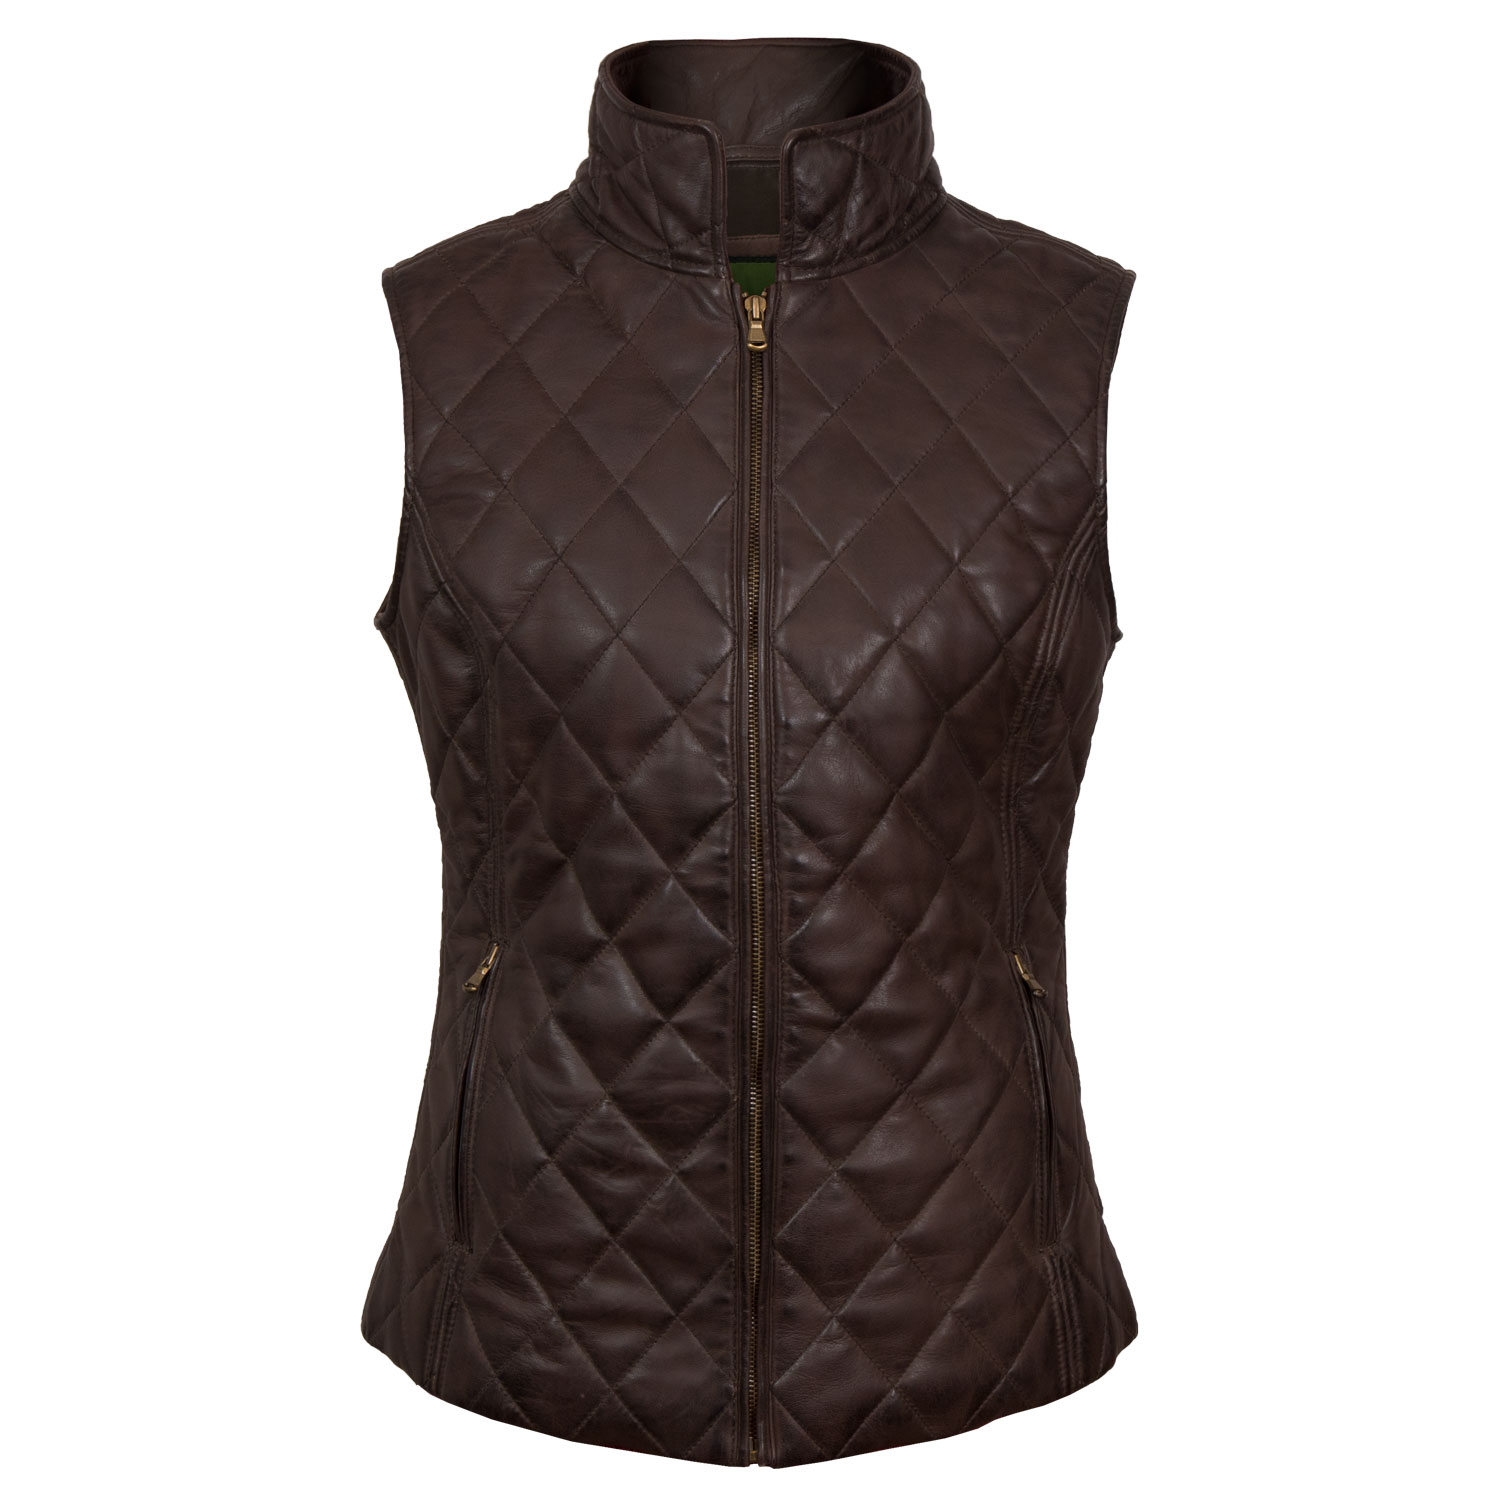 Alexis: Women's Brown Quilted Leather Gilet by Hidepark